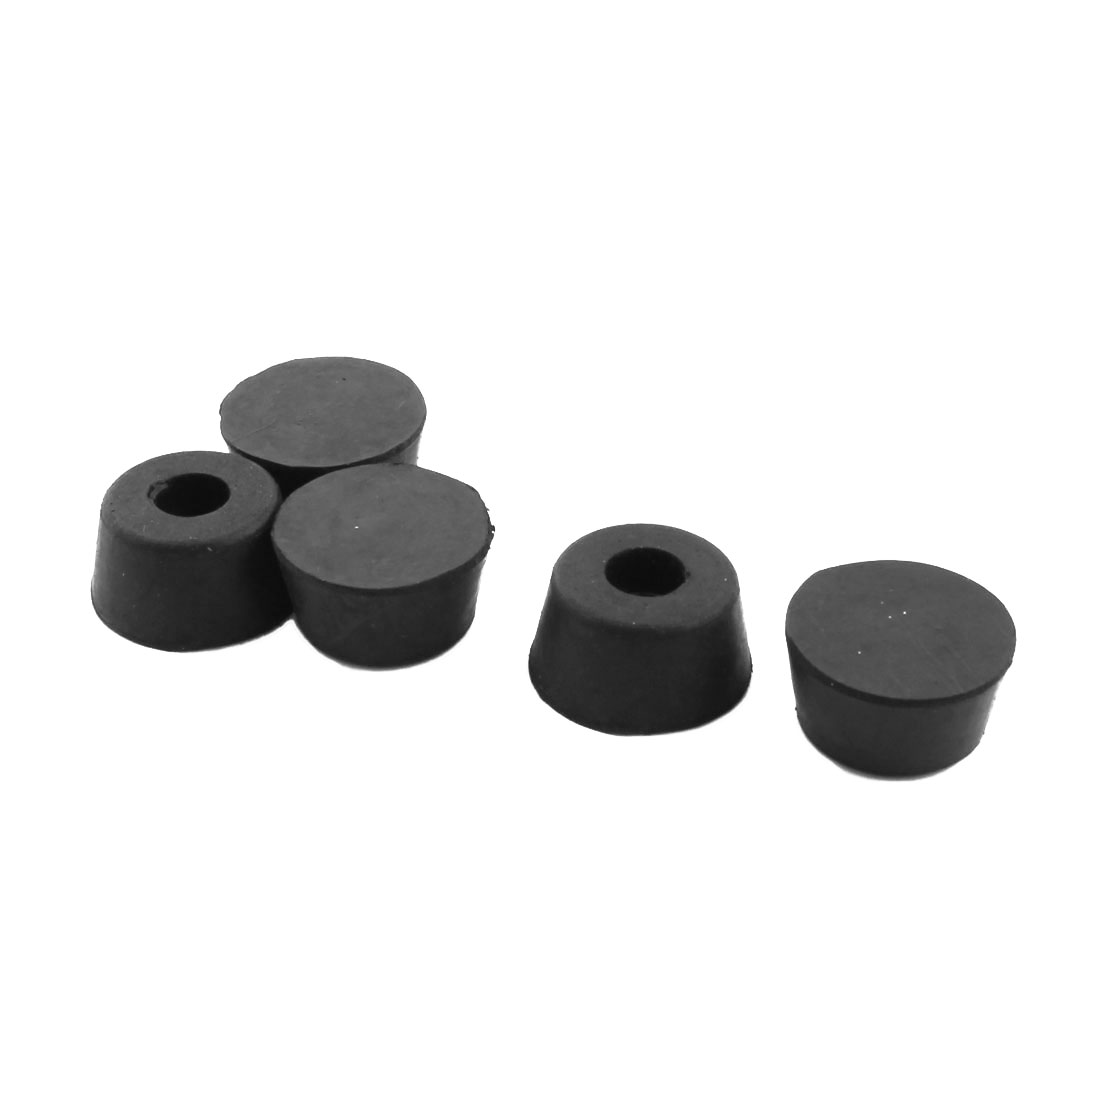 5Pcs Cone Shaped 9mm Hole Dia Furniture Table Chair Rubber Foot Pads Black 25x13mm